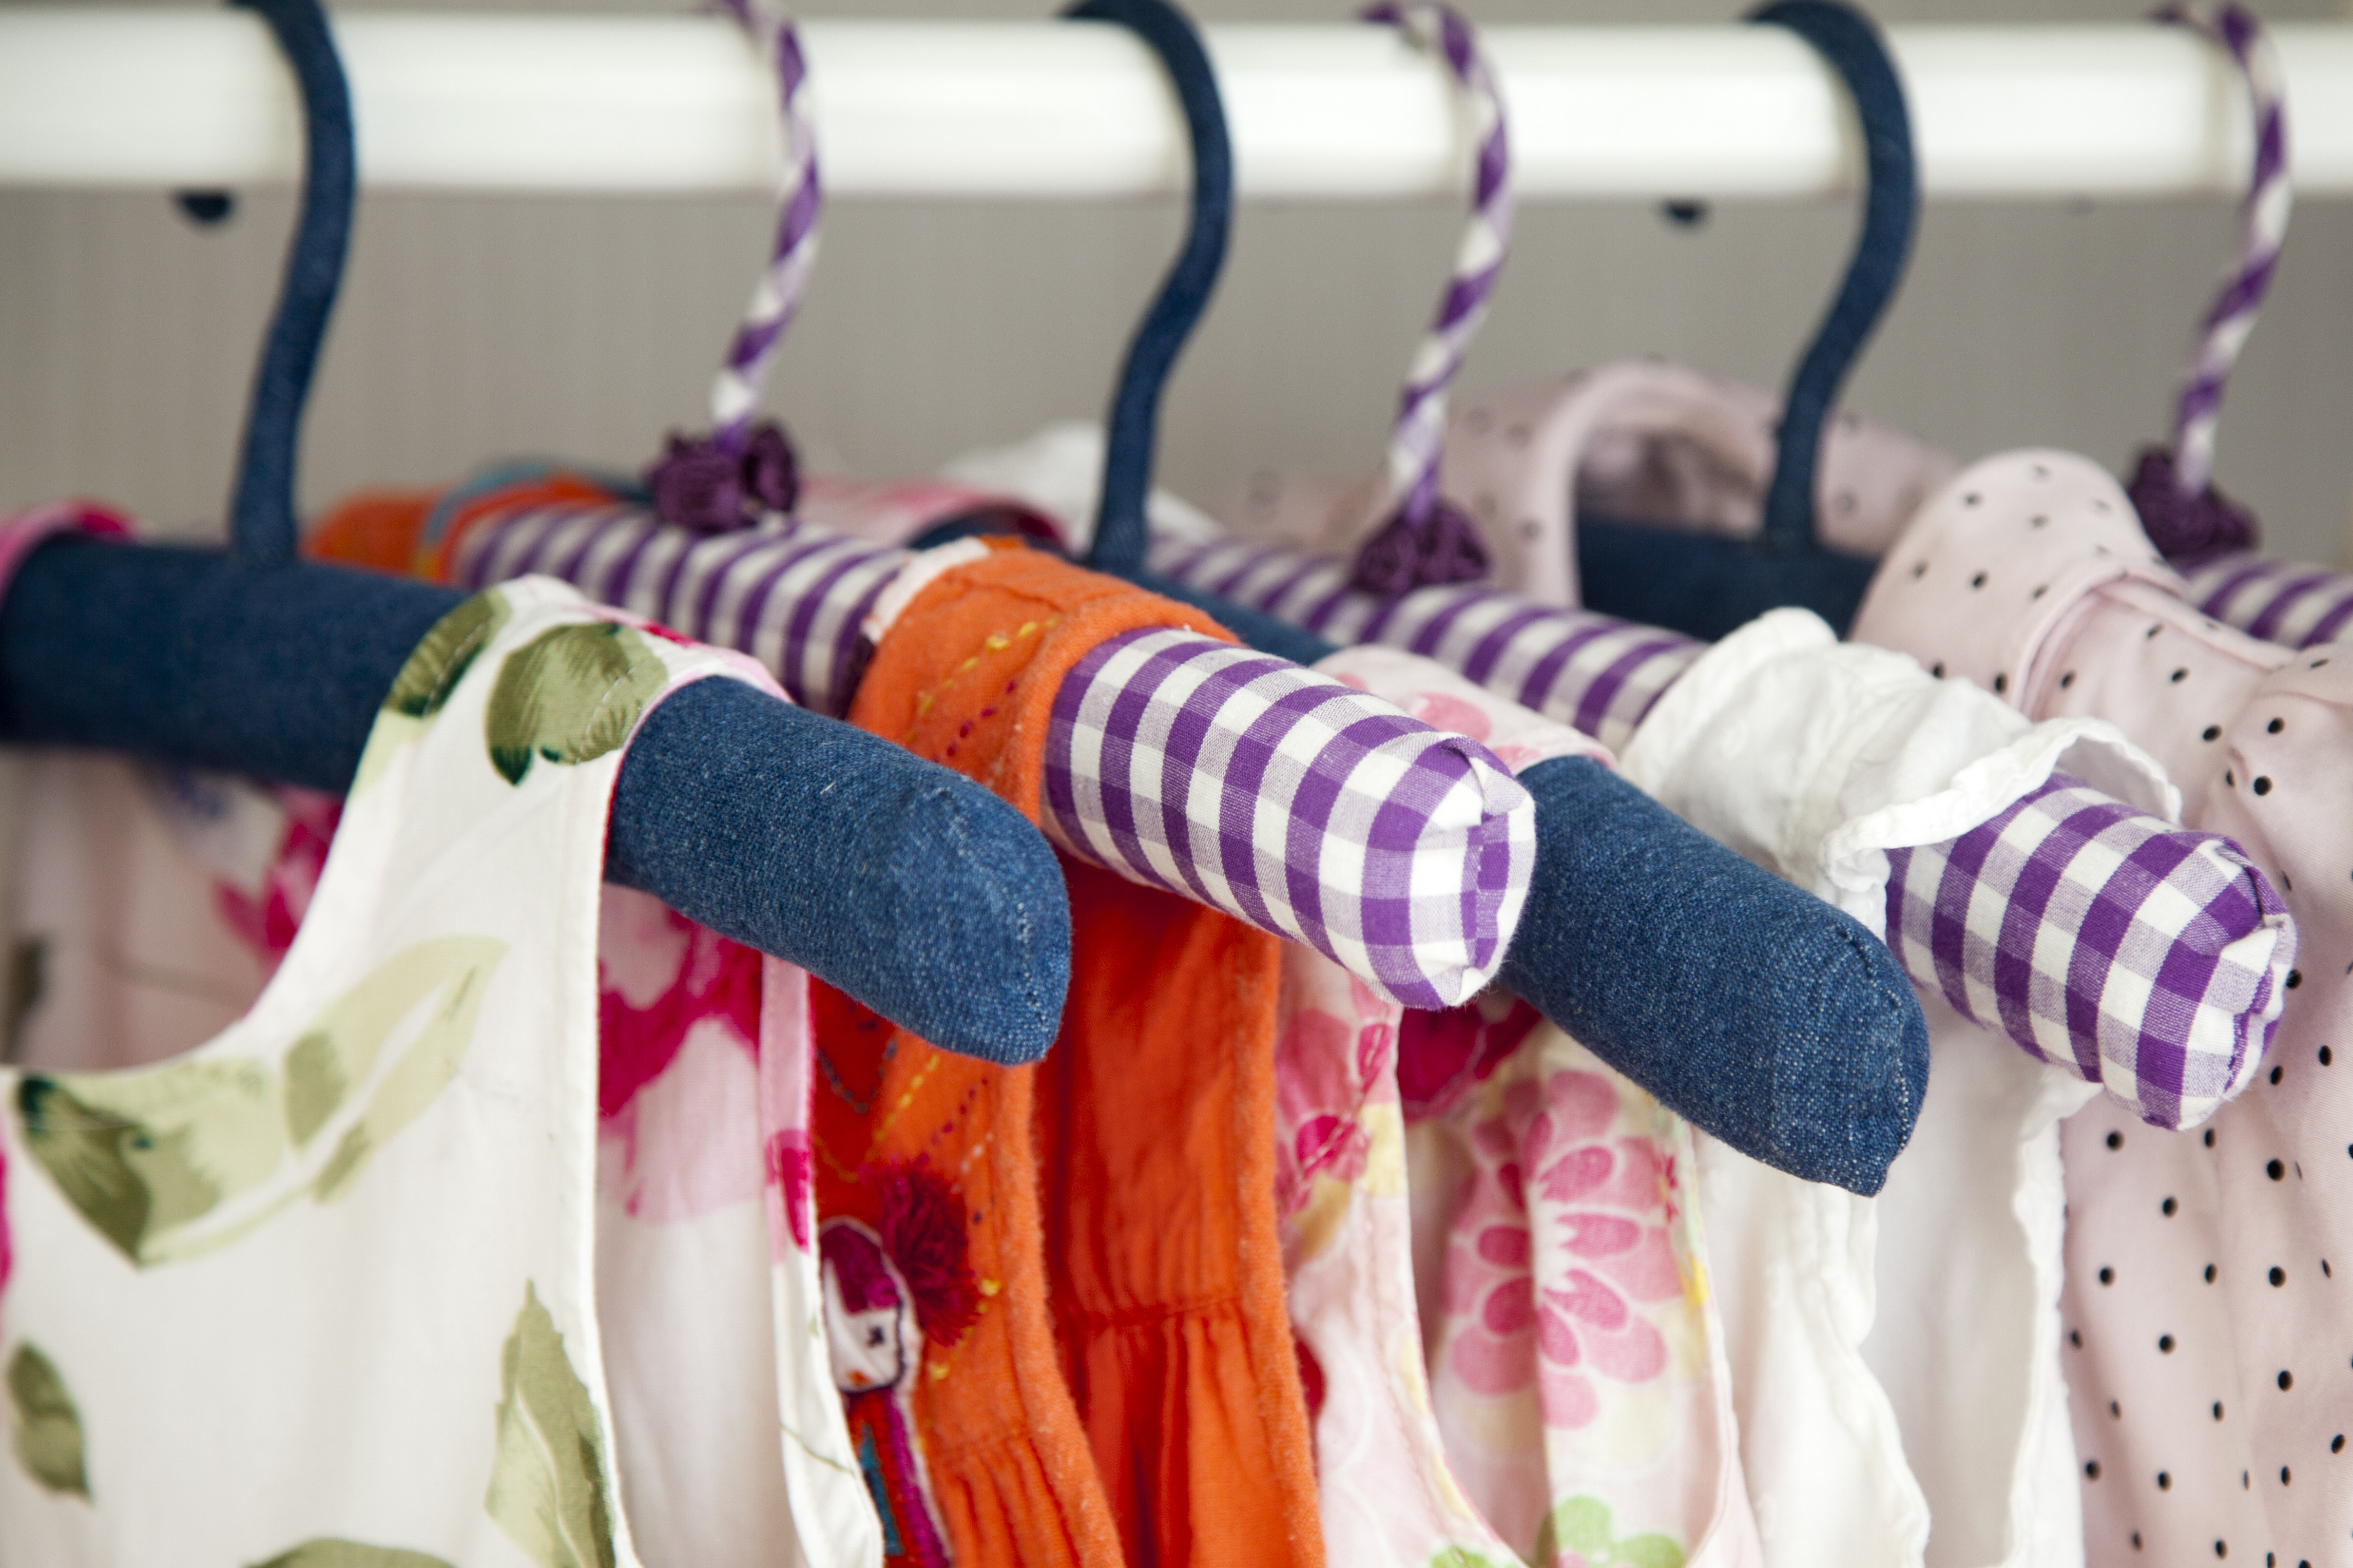 How to Store Seasonal Clothing2